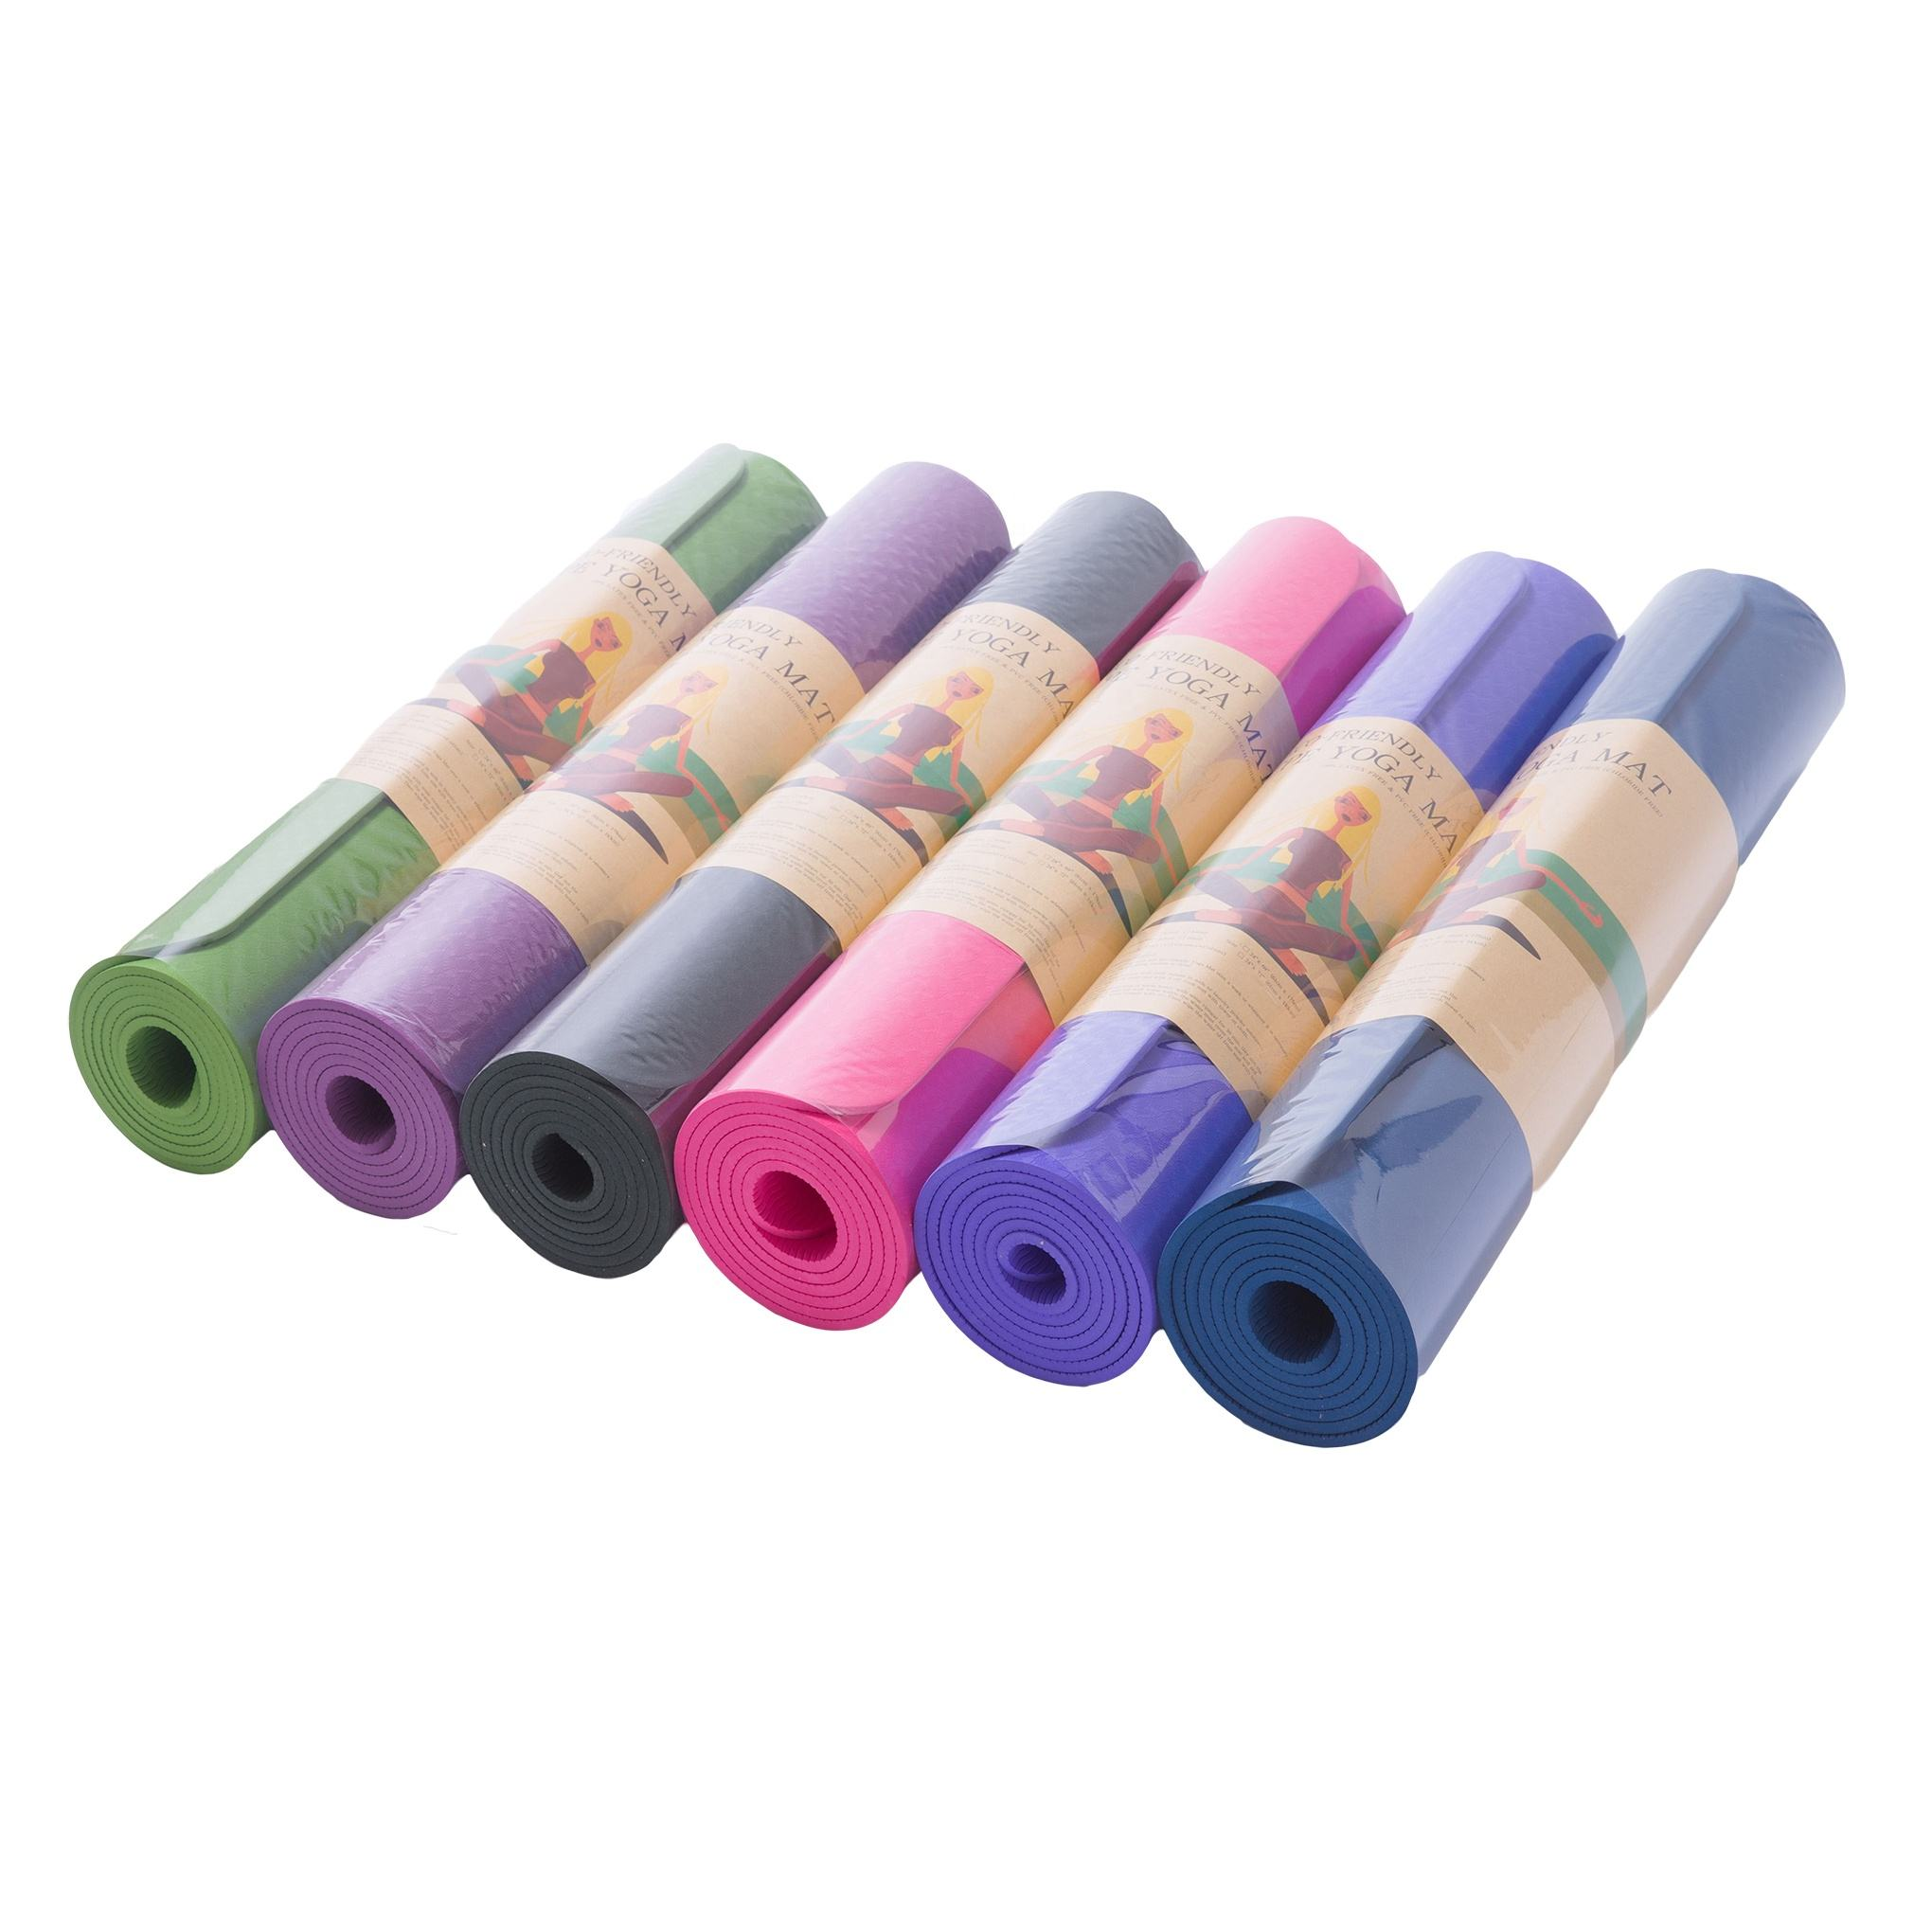 183cm*61cm*6mm for women anti-slip single color eco-friendly TPE yoga mat